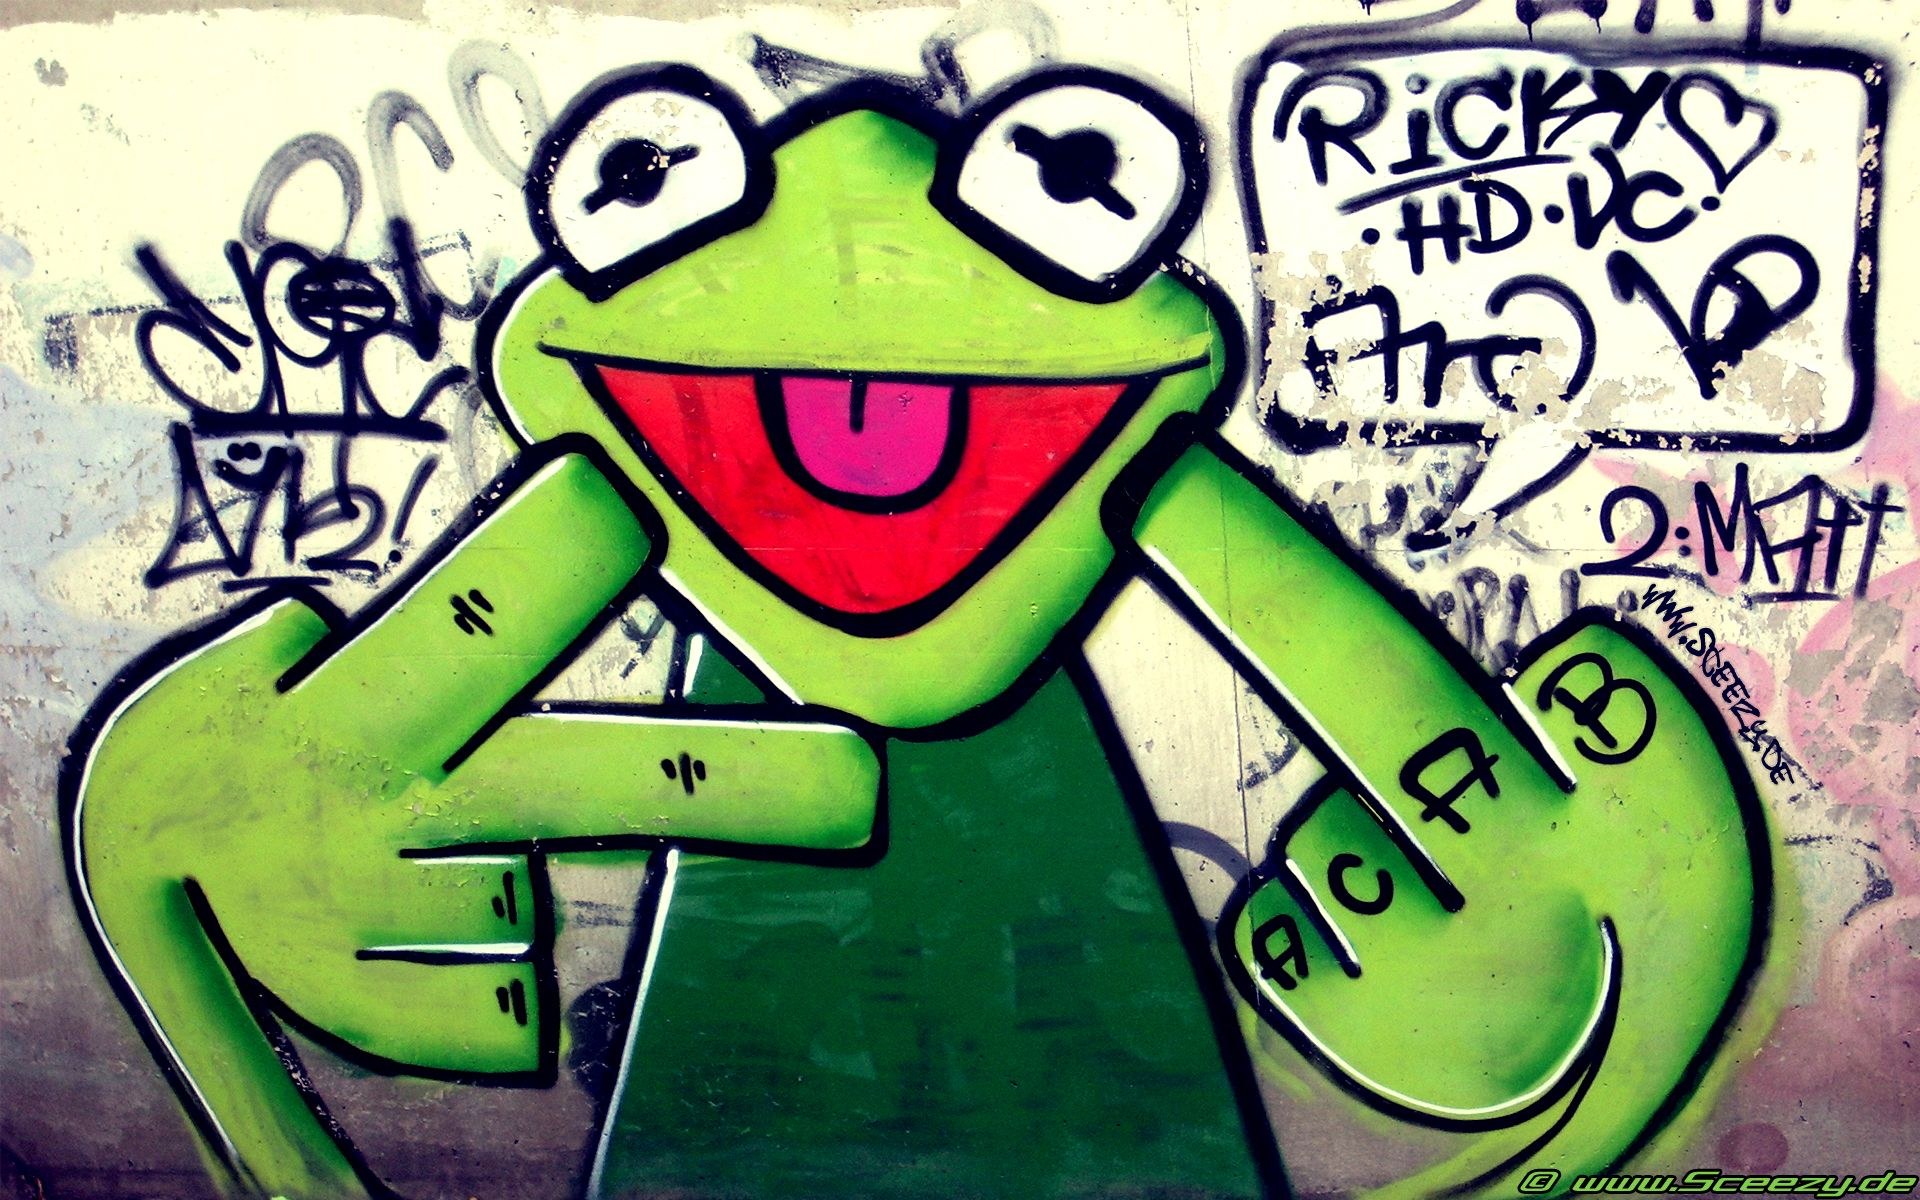 Graffiti Hd Wallpapers And Backgrounds Graffiti